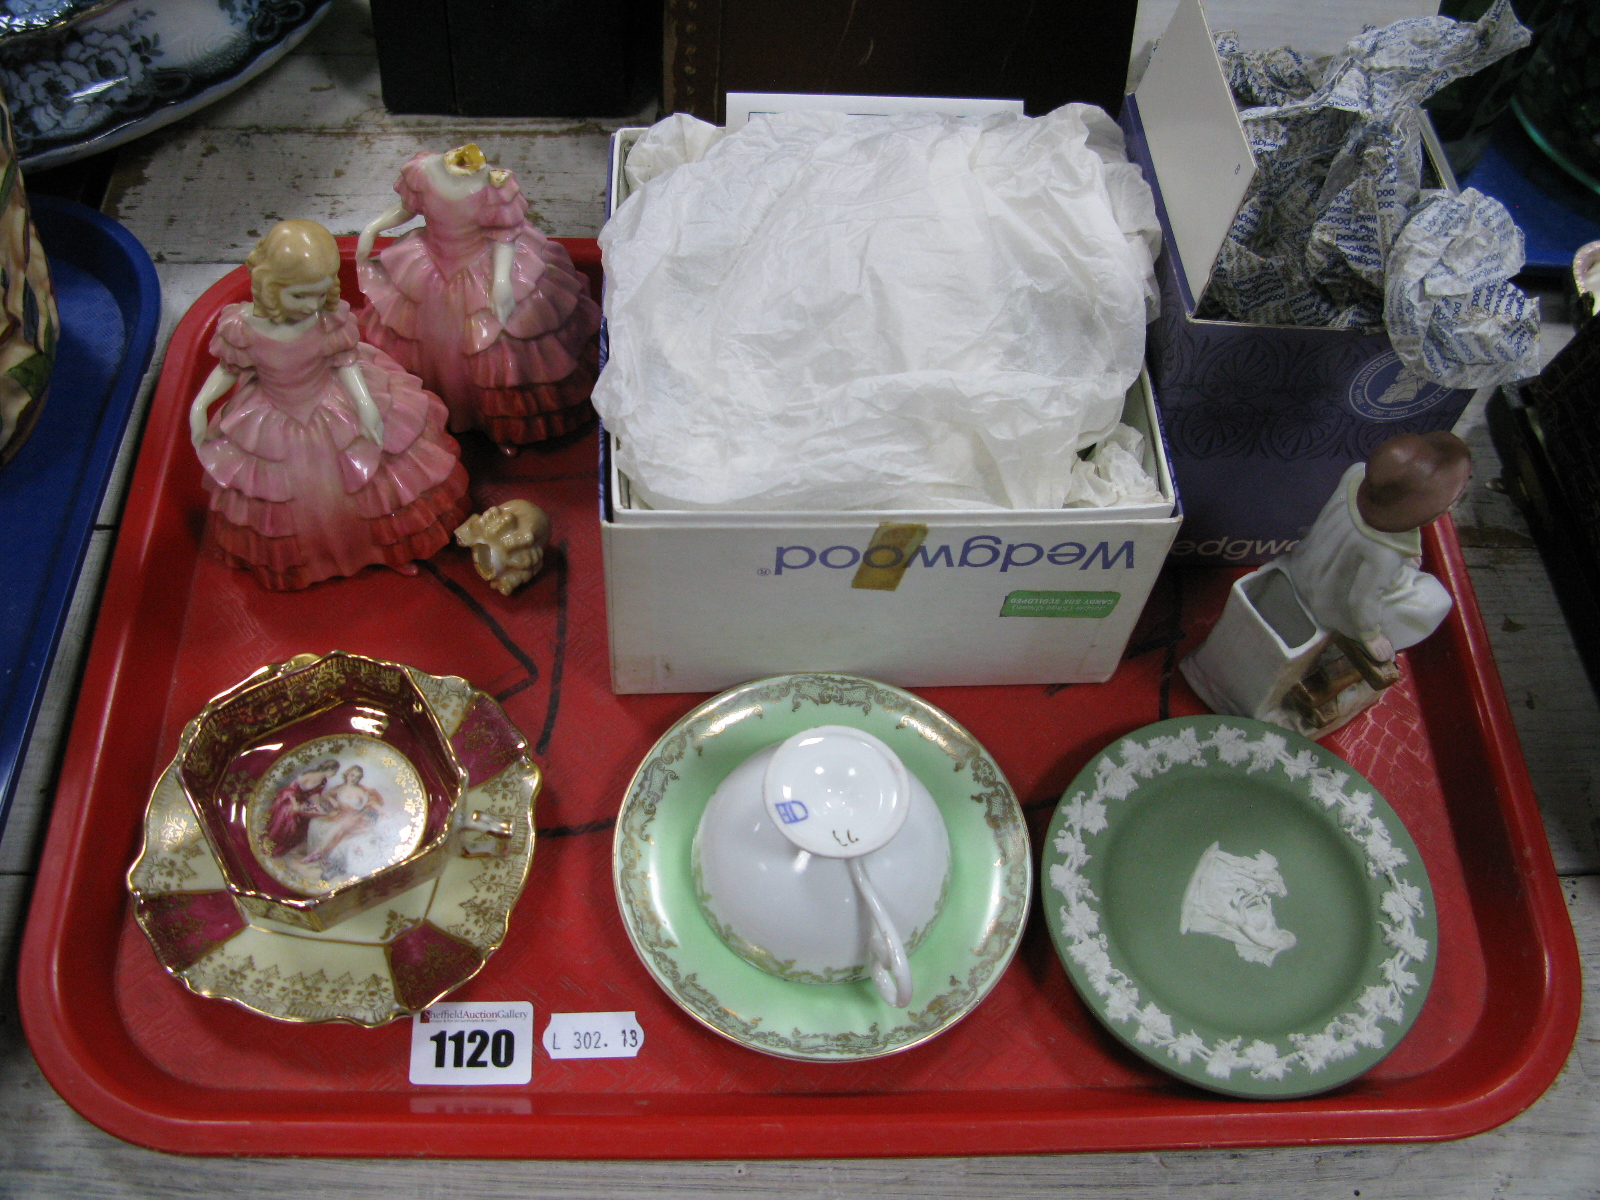 Lot 1120 - Two Doulton 'Rose' HN1368 (damages), Wedgwood Jasper ware, etc:- One Tray